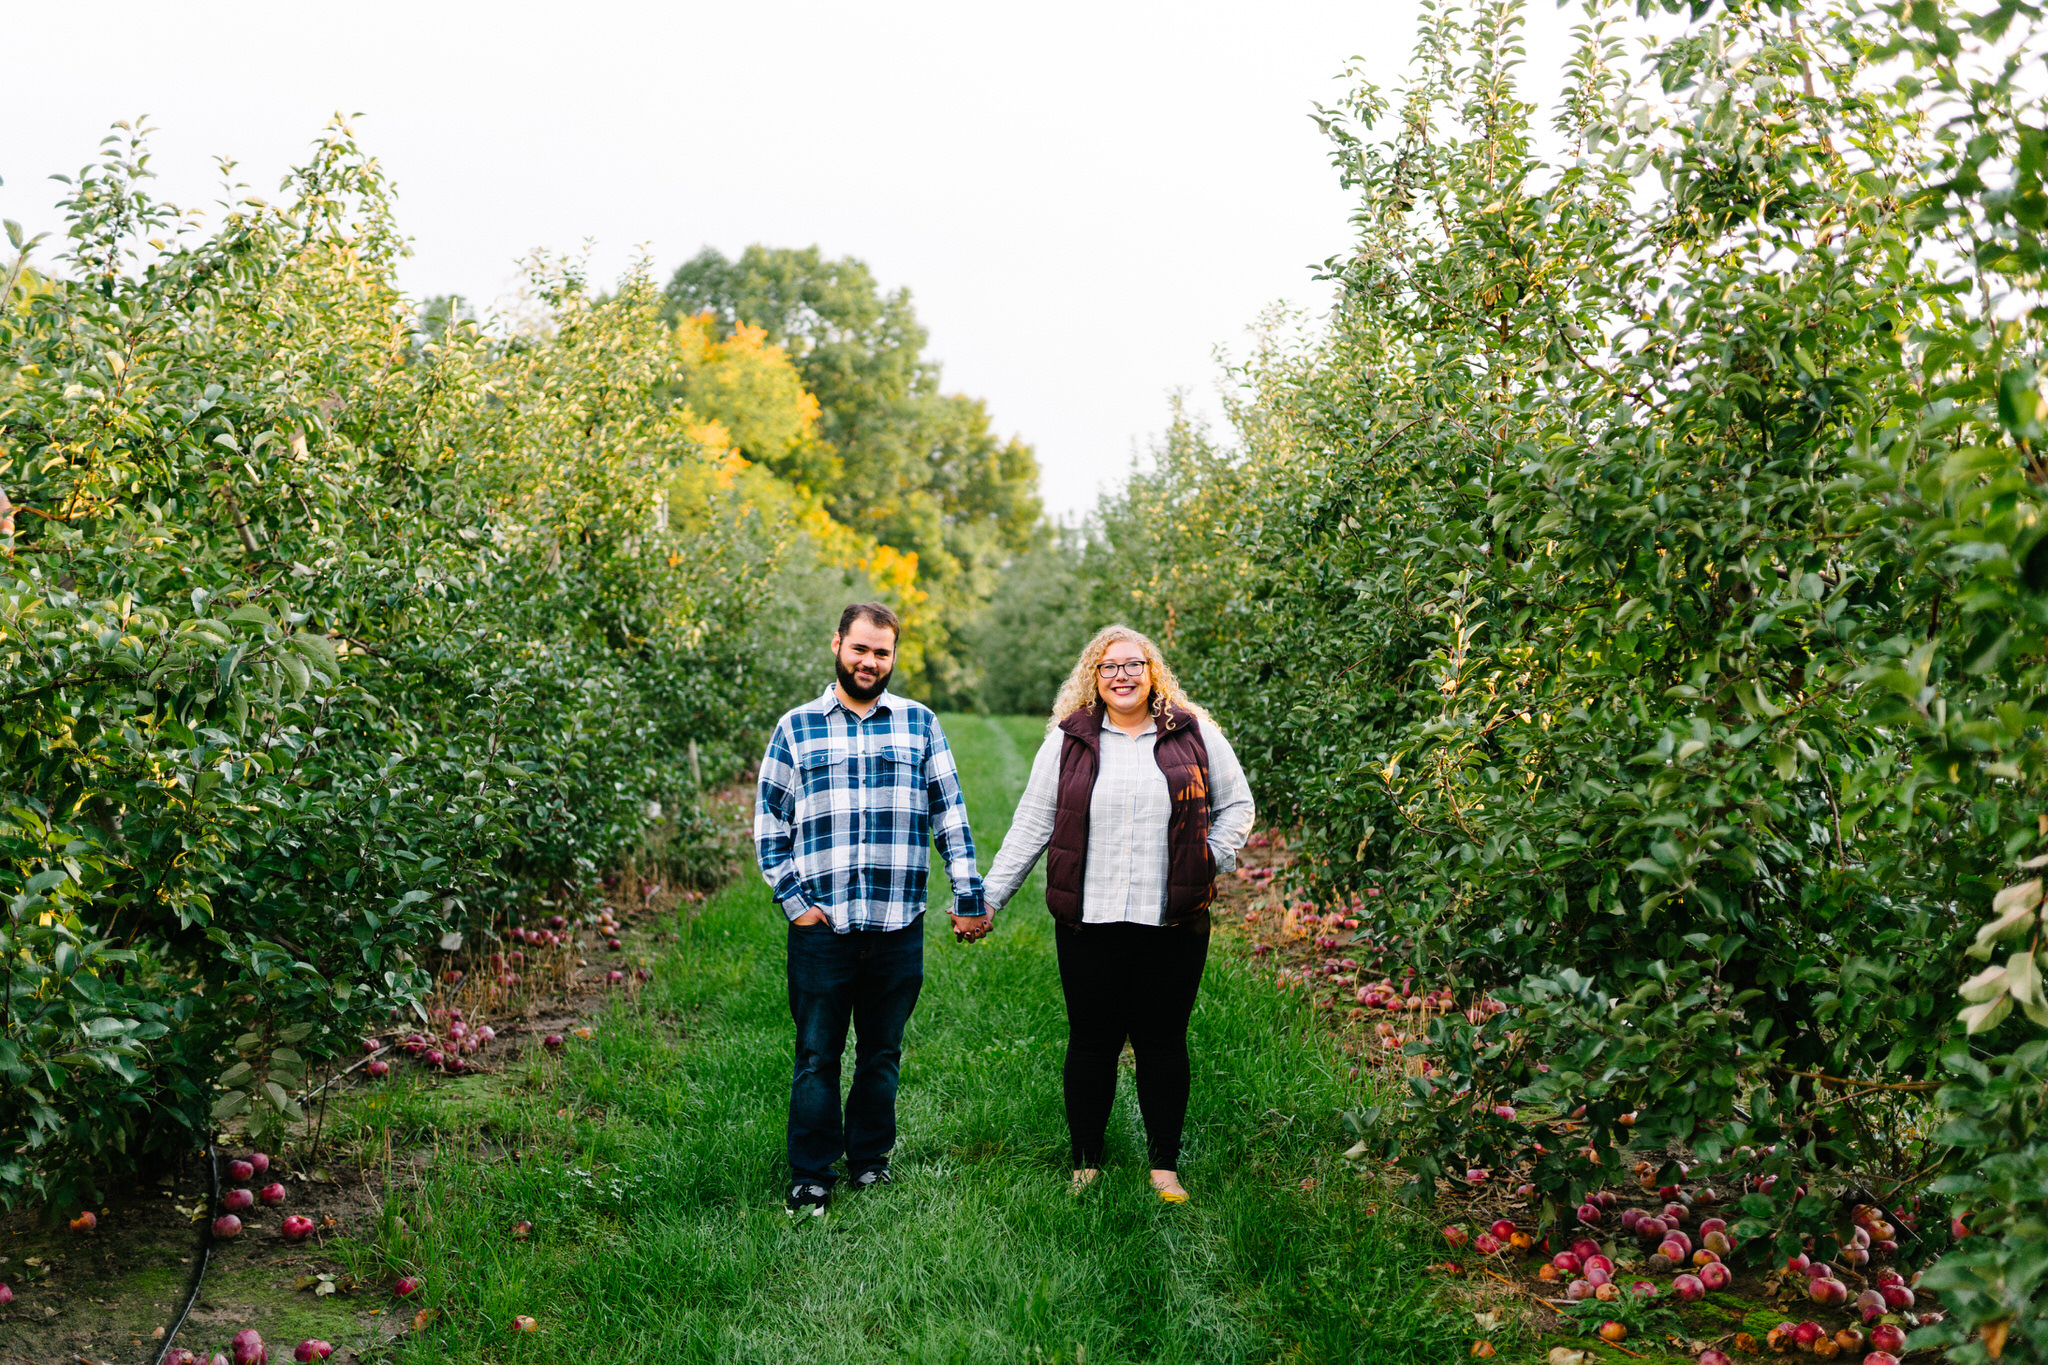 001-rempel-photography-wedding-chicago-family-oak-park-austin-brooklyn-engagement-grand-rapids-apple-orchard-robinettes.jpg